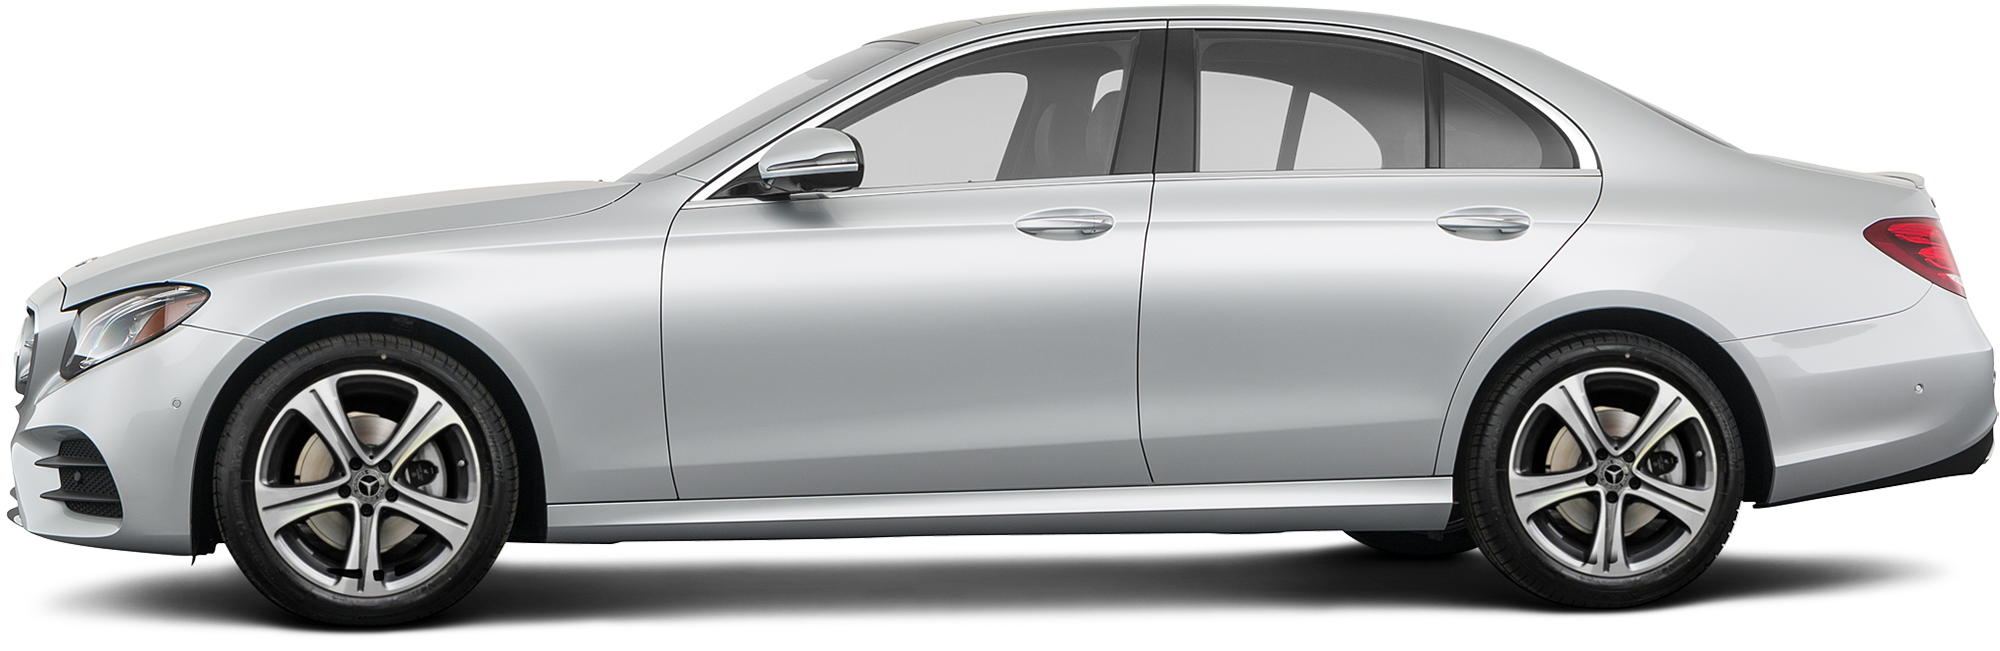 2020 Mercedes-Benz E-Class Sedan E 350 4MATIC